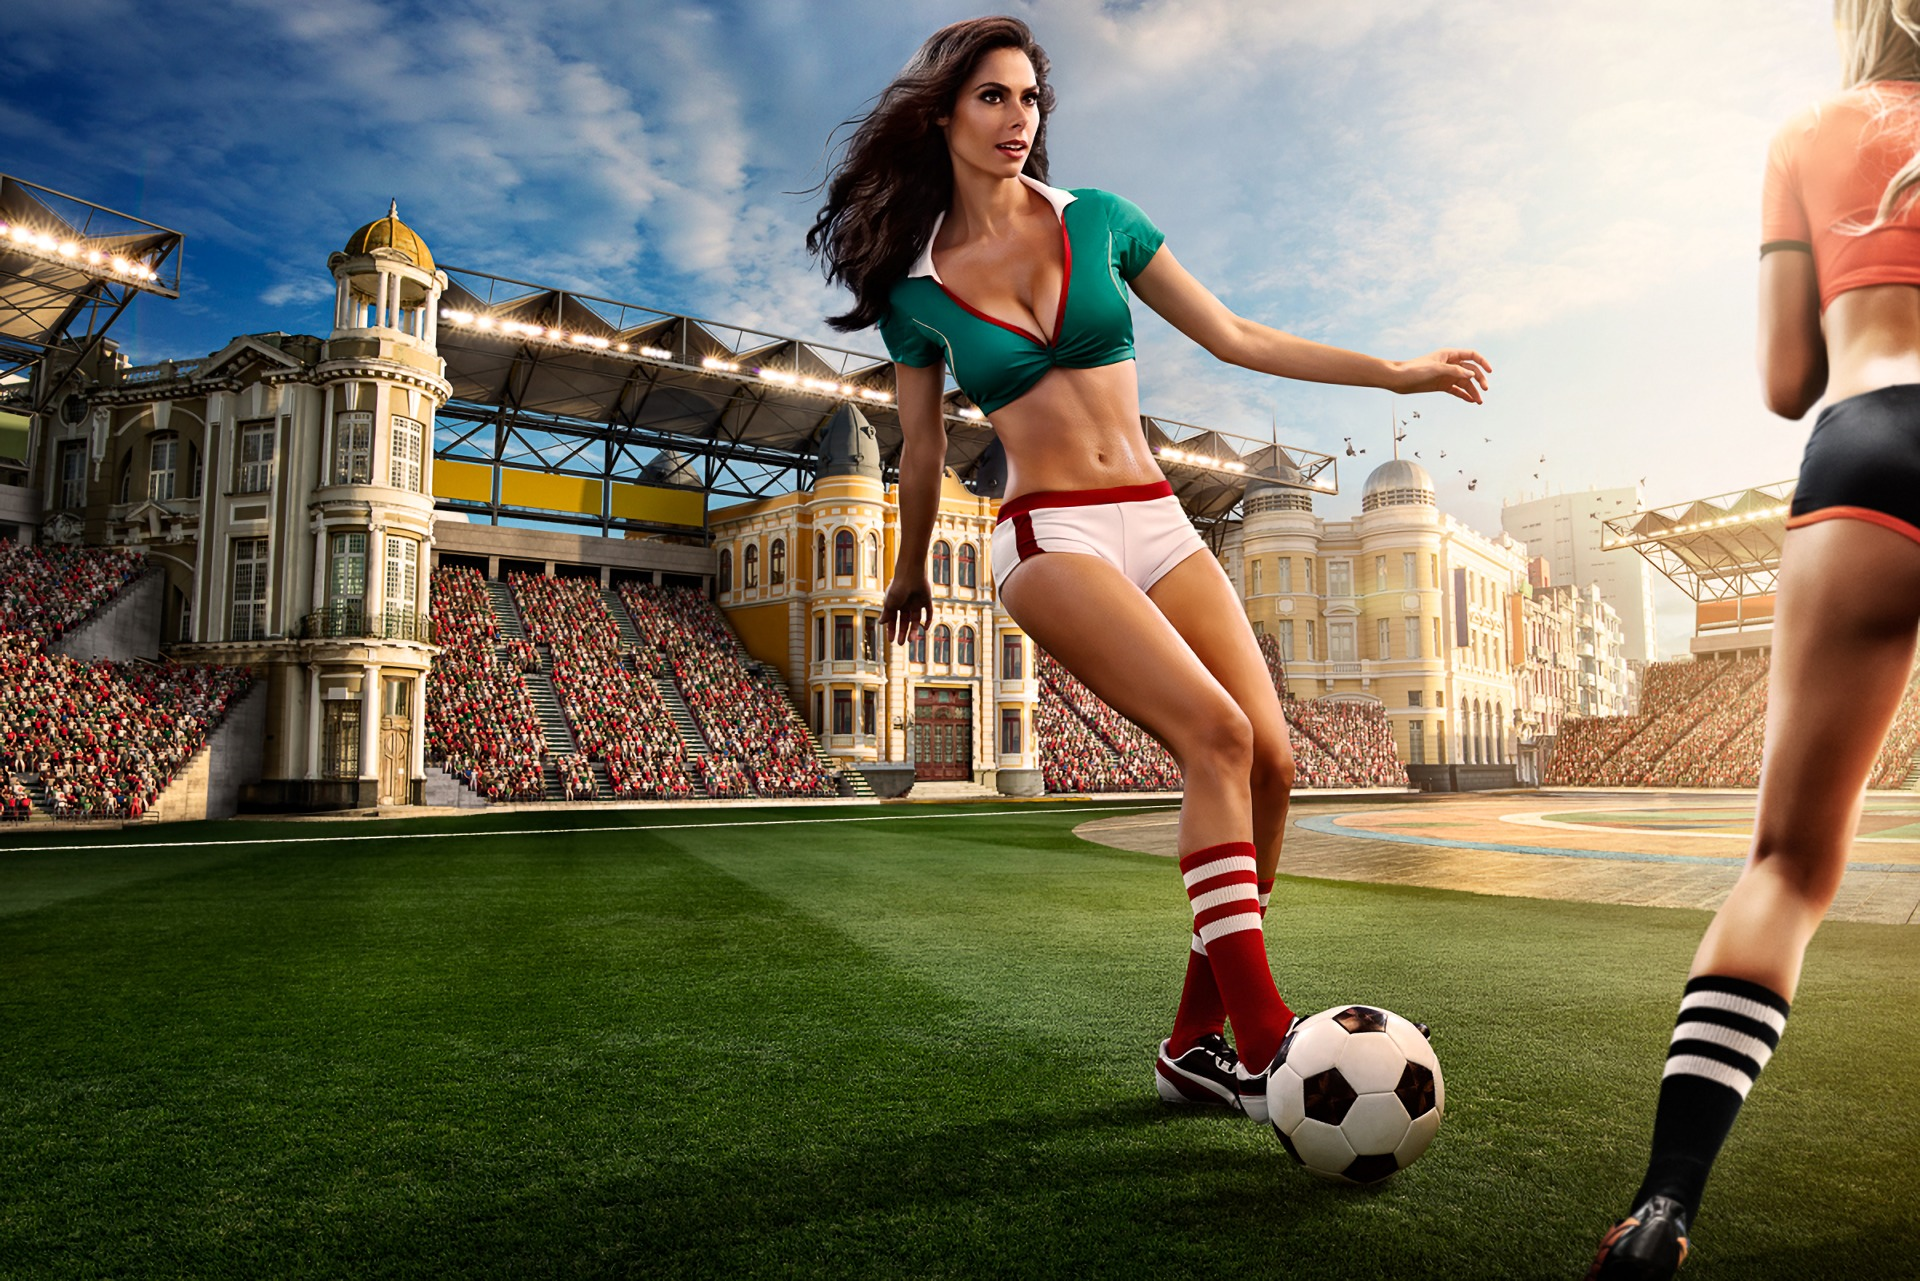 Sex soccer stock photos, images photography